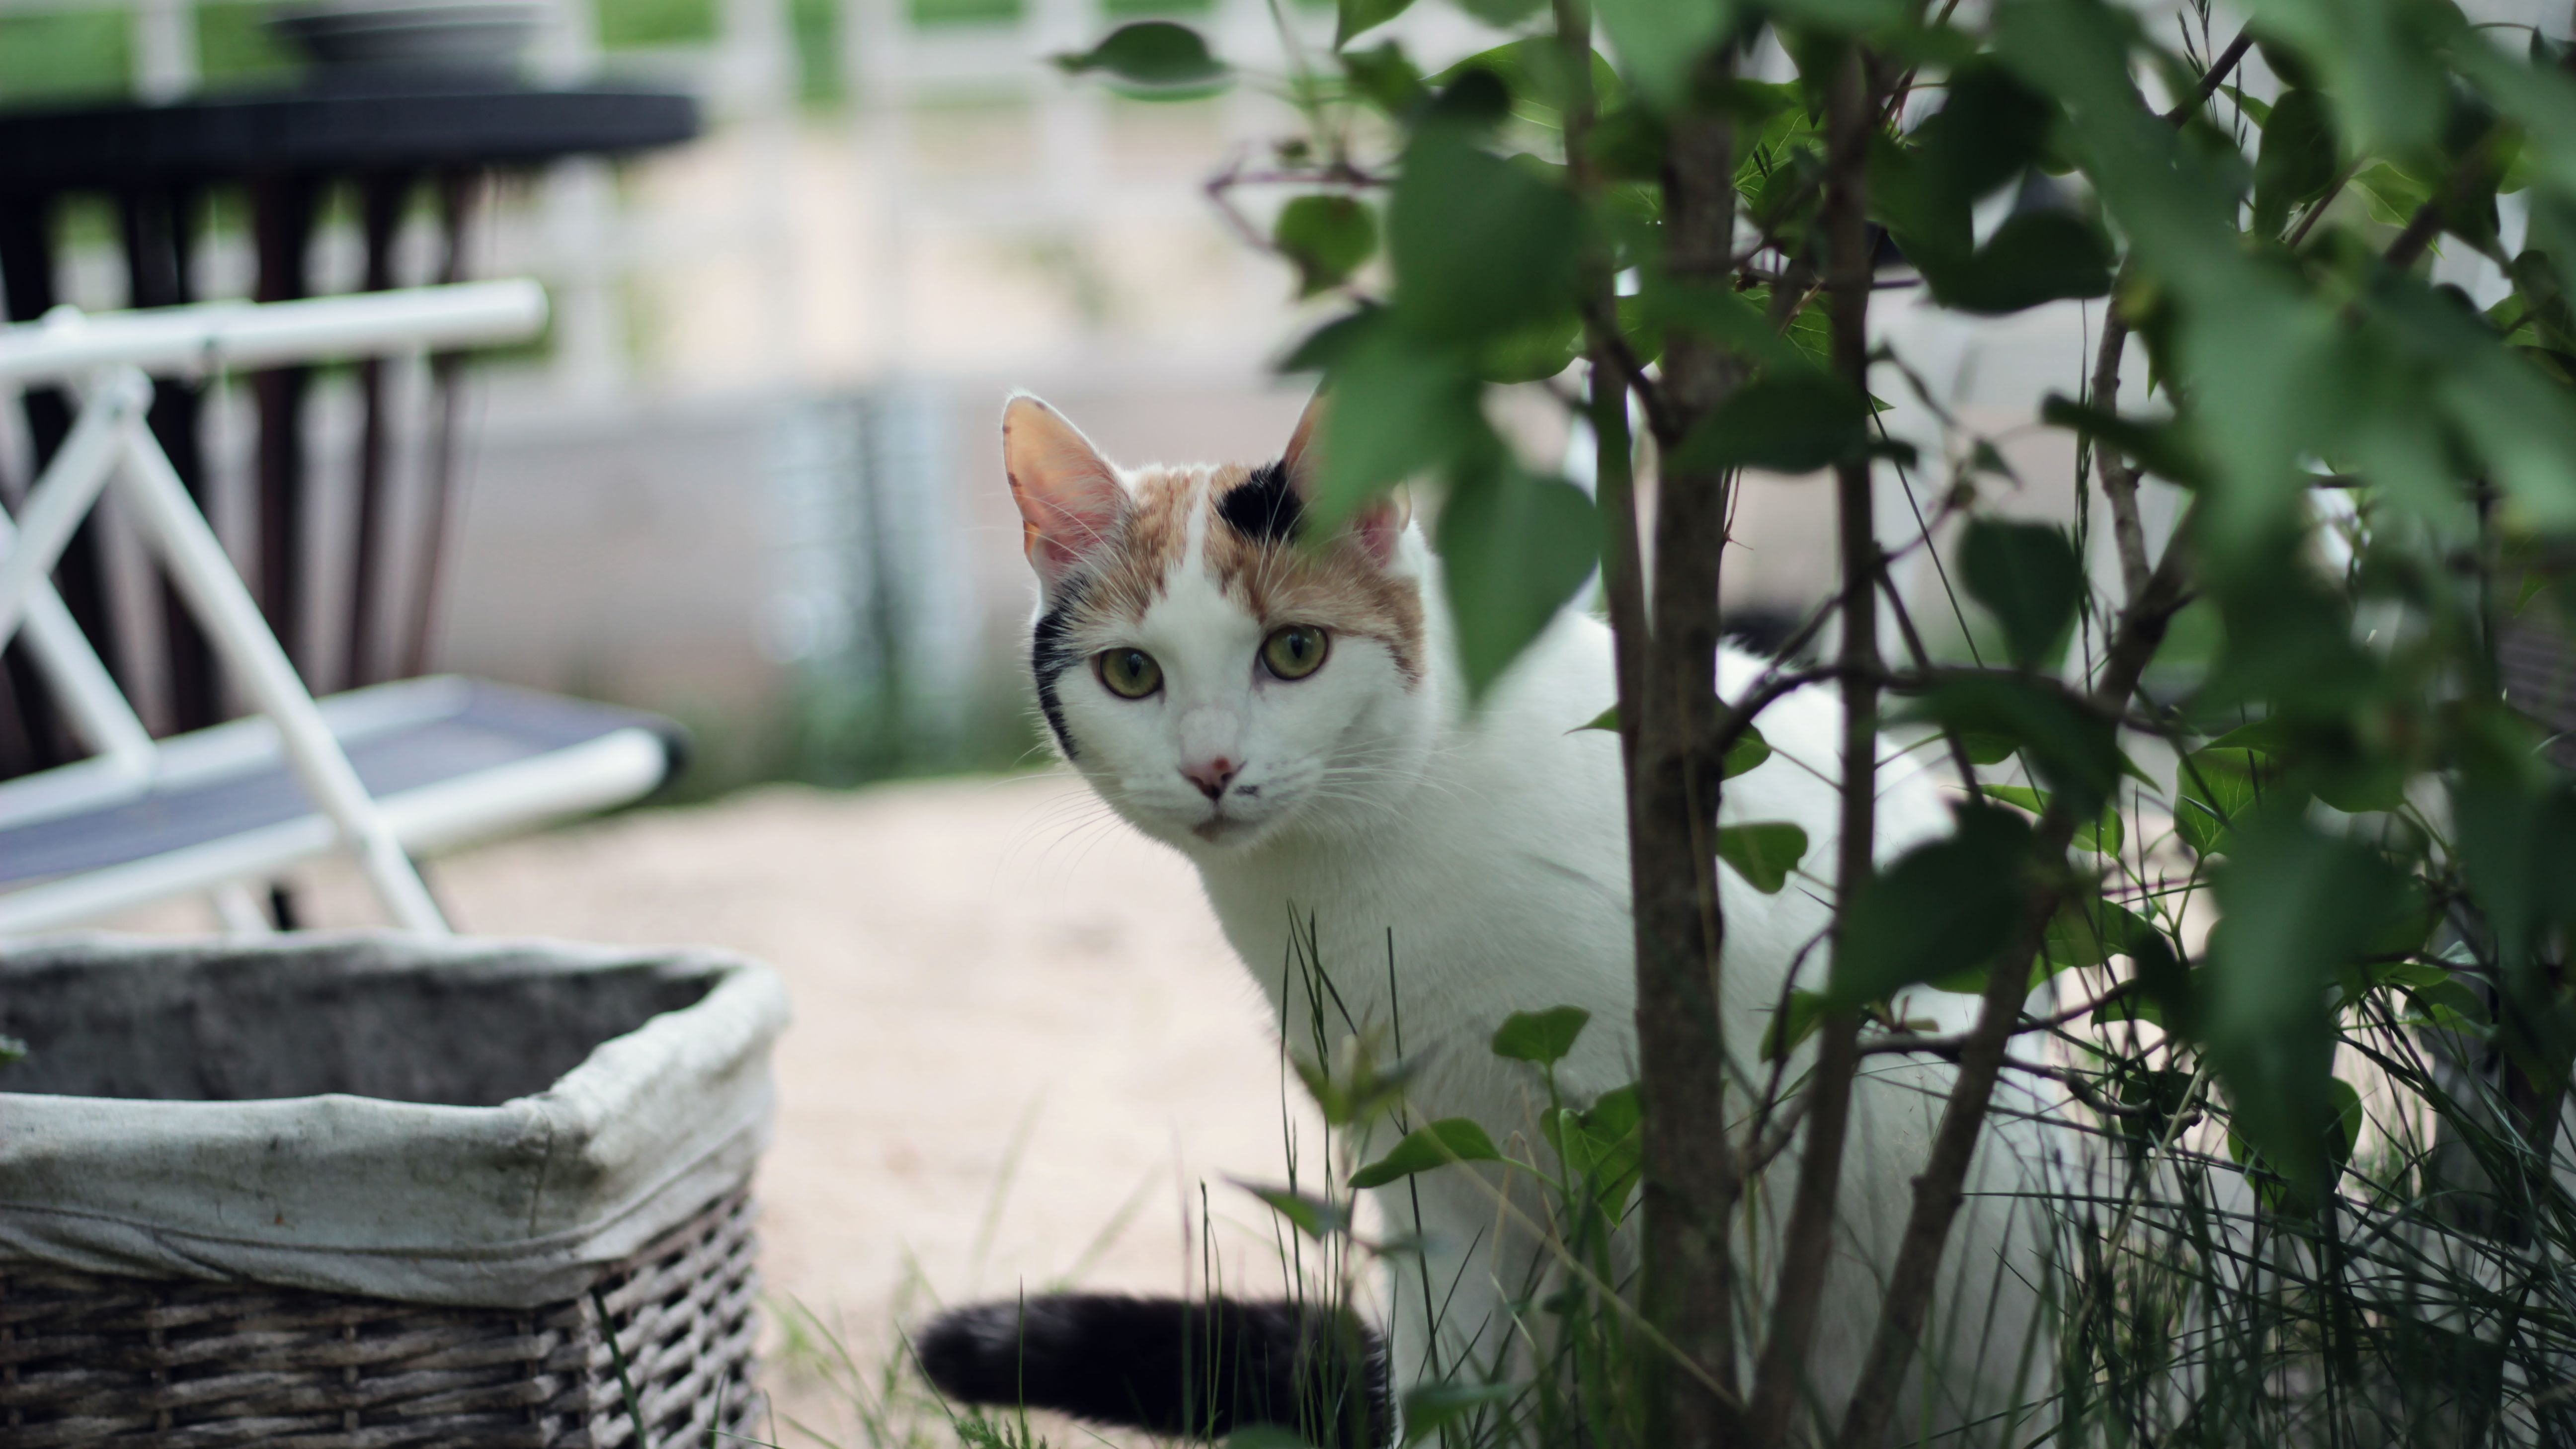 10 Ways To Find Your Lost Cat